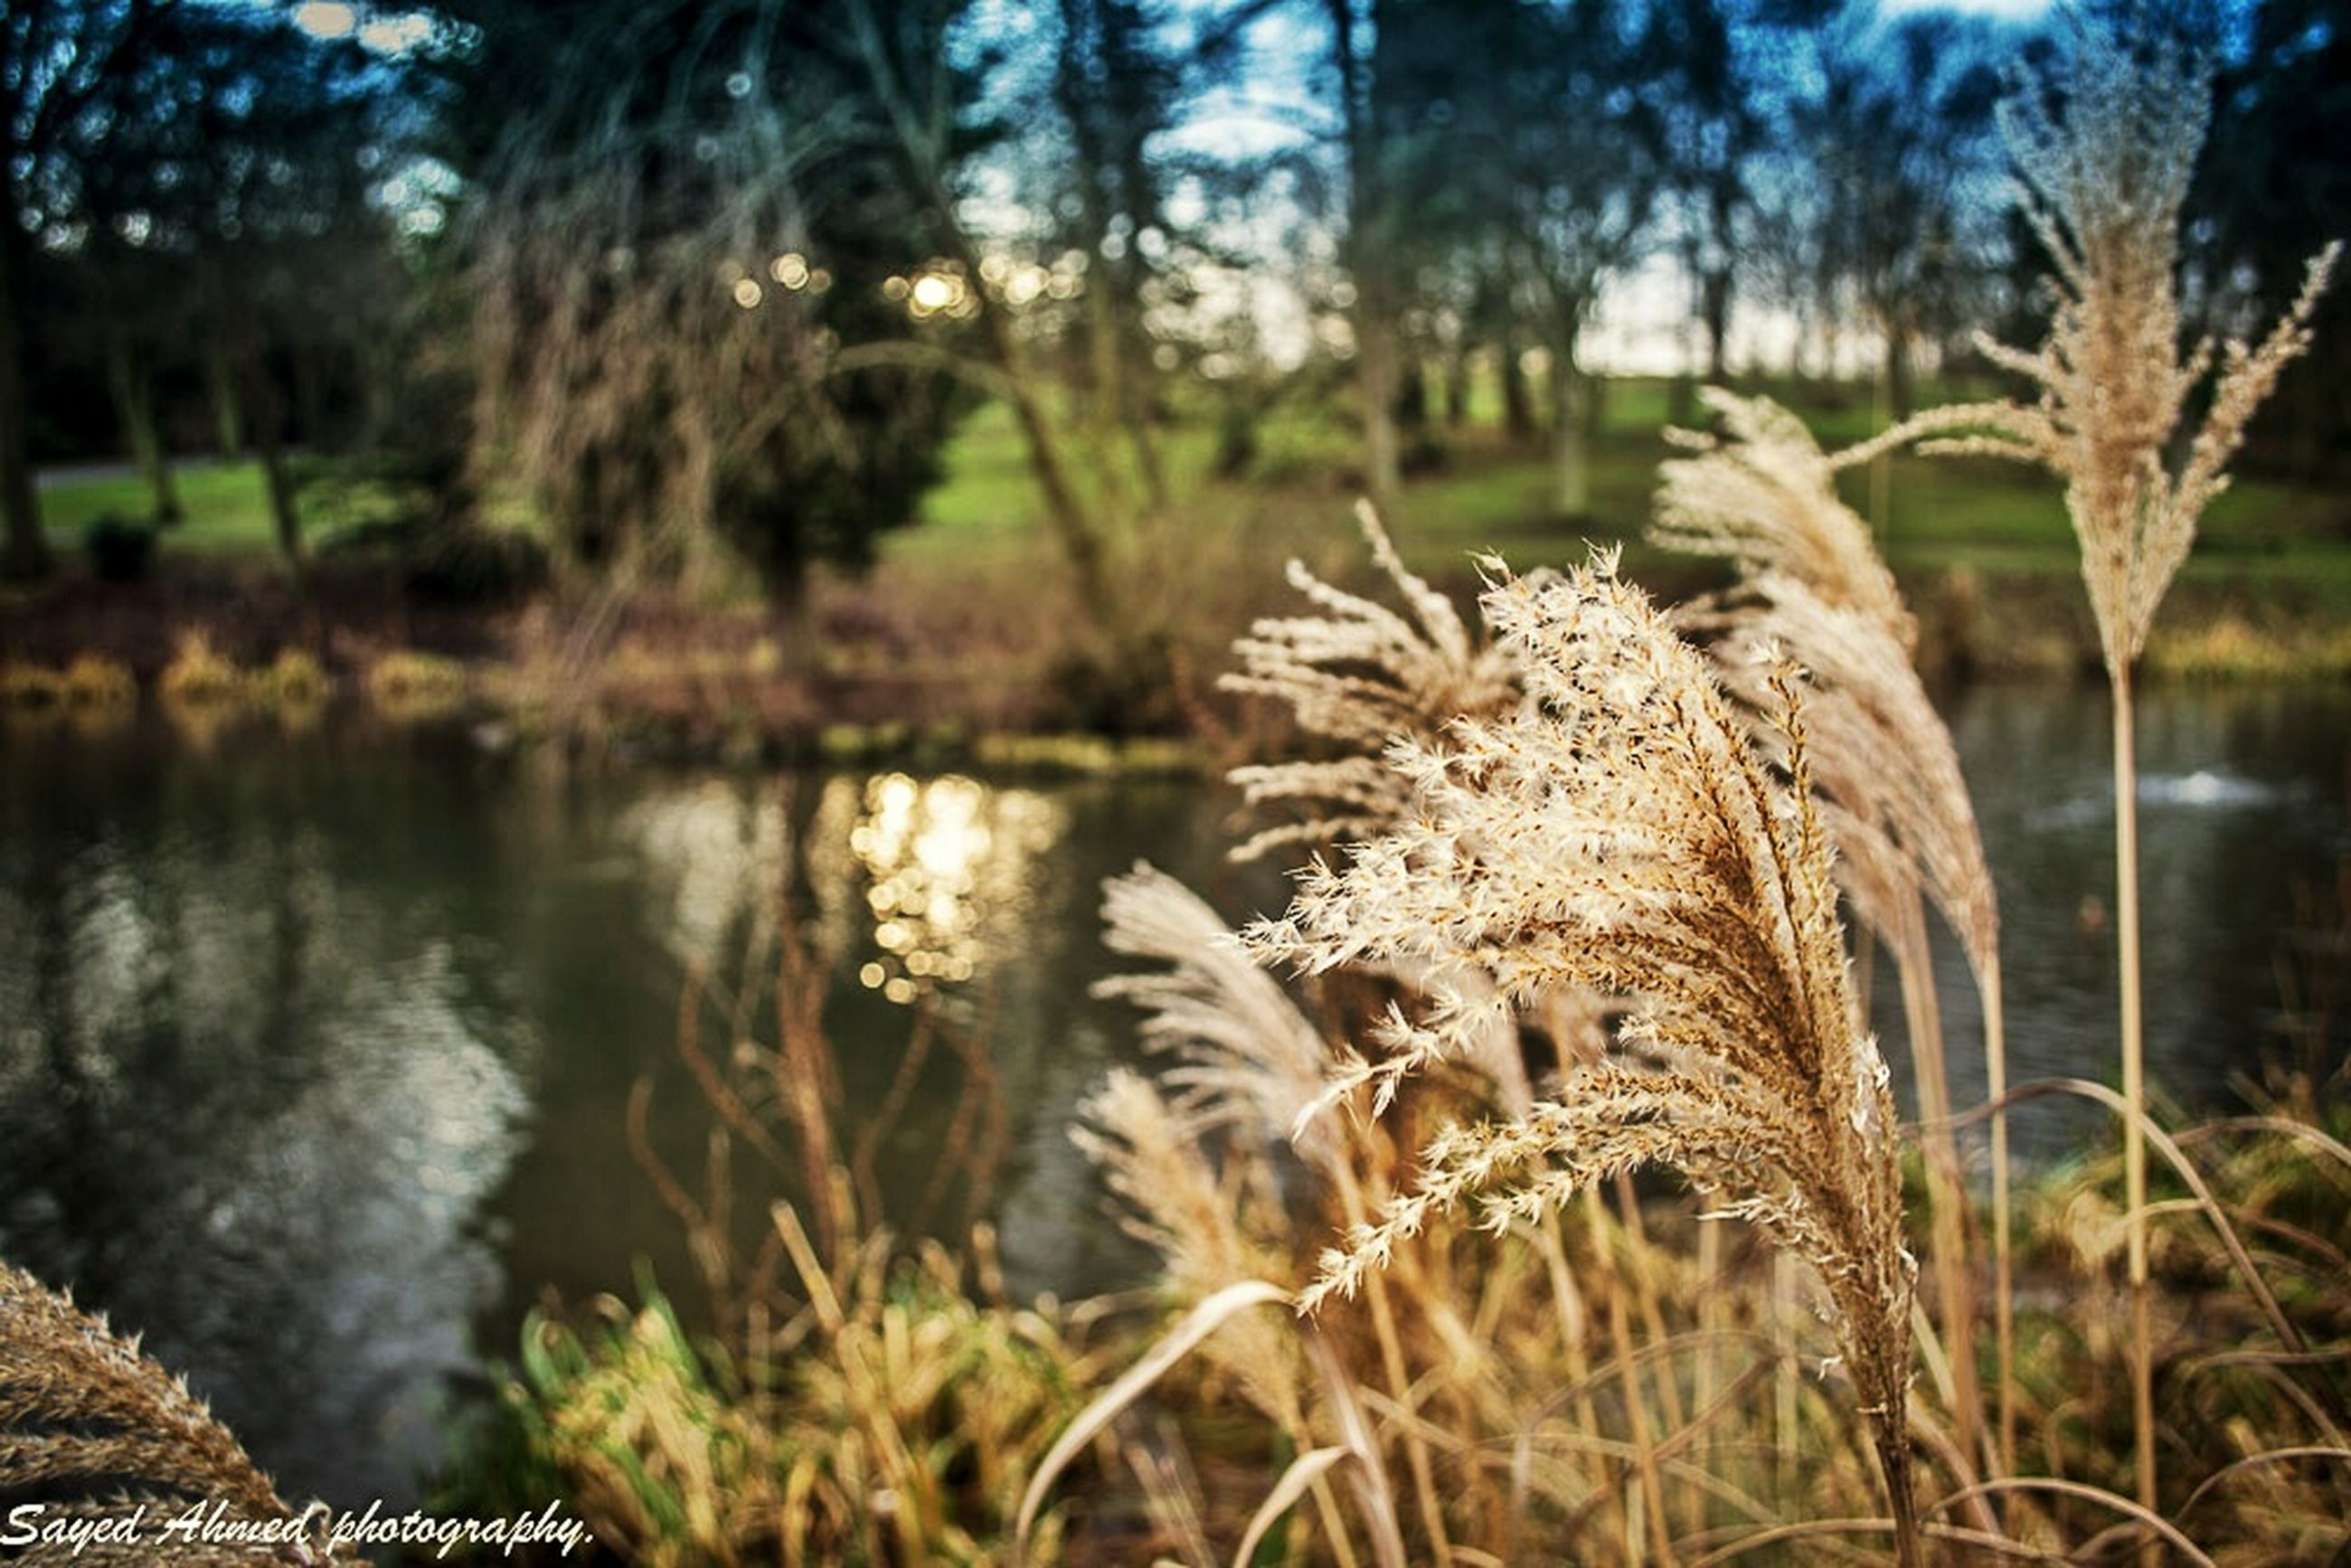 animals in the wild, animal themes, wildlife, focus on foreground, grass, nature, growth, plant, bird, tree, one animal, tranquility, beauty in nature, lake, field, forest, day, no people, outdoors, water